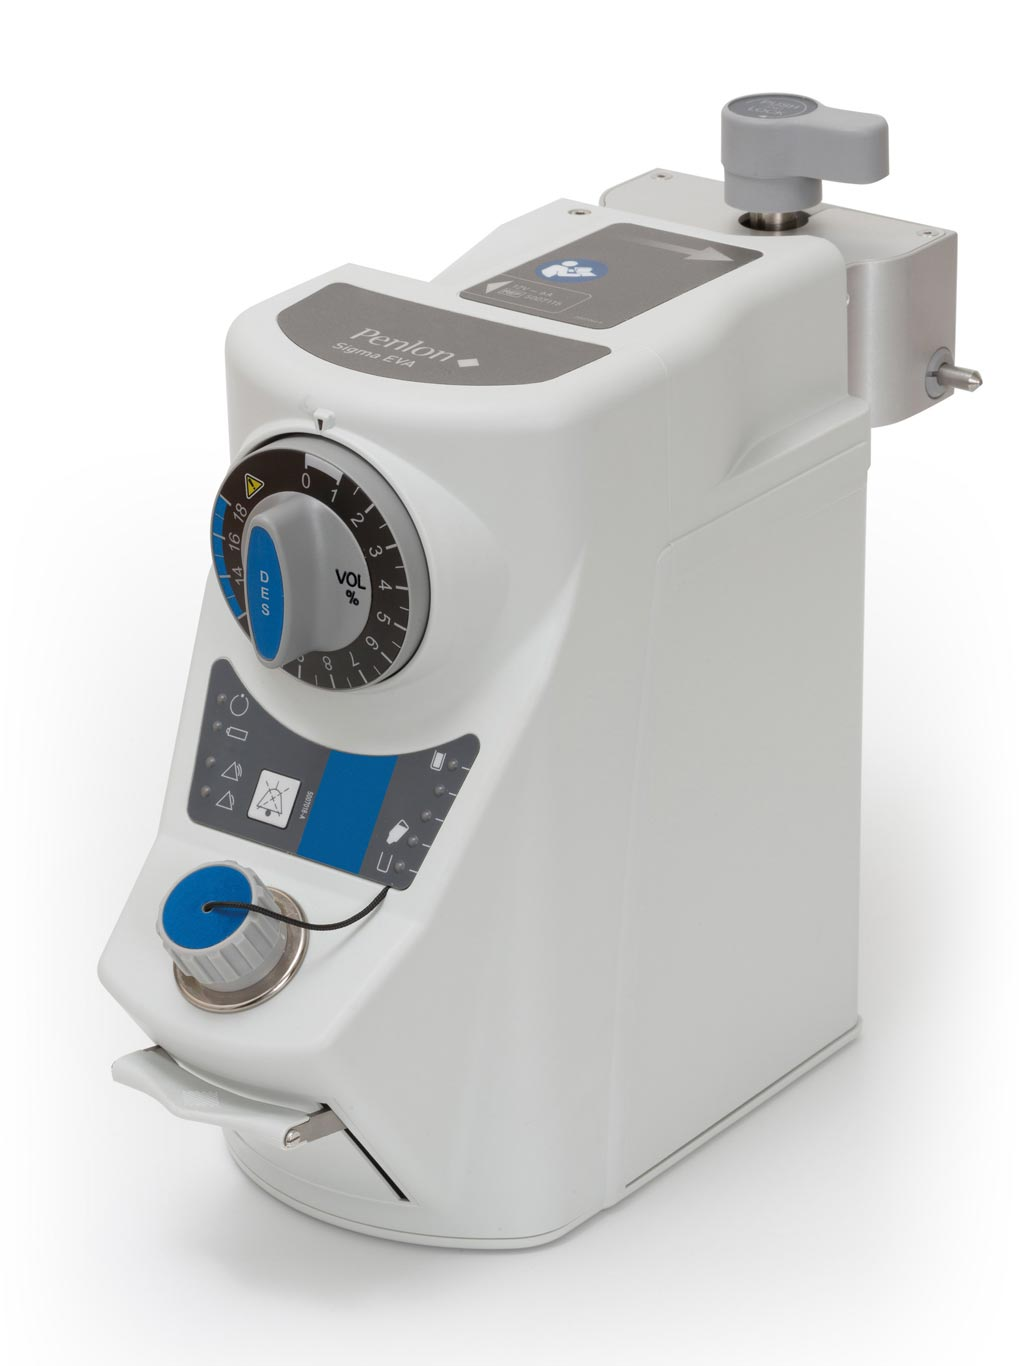 Image: The Sigma EVA desflurane vaporizer for anesthesia (Photo courtesy of Penlon).